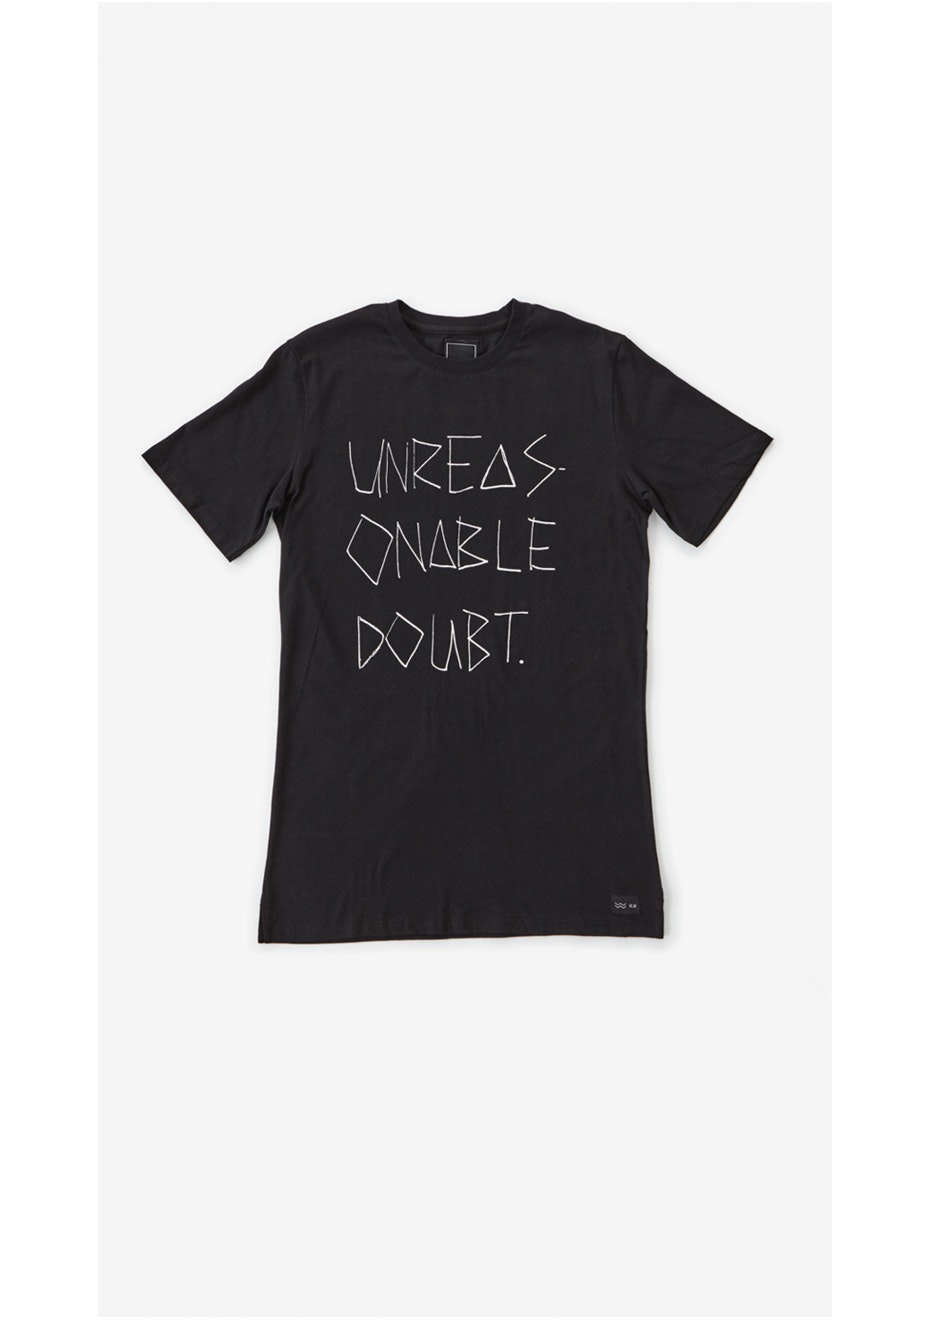 I Love Ugly - Unreasonable Doubt Tee Black